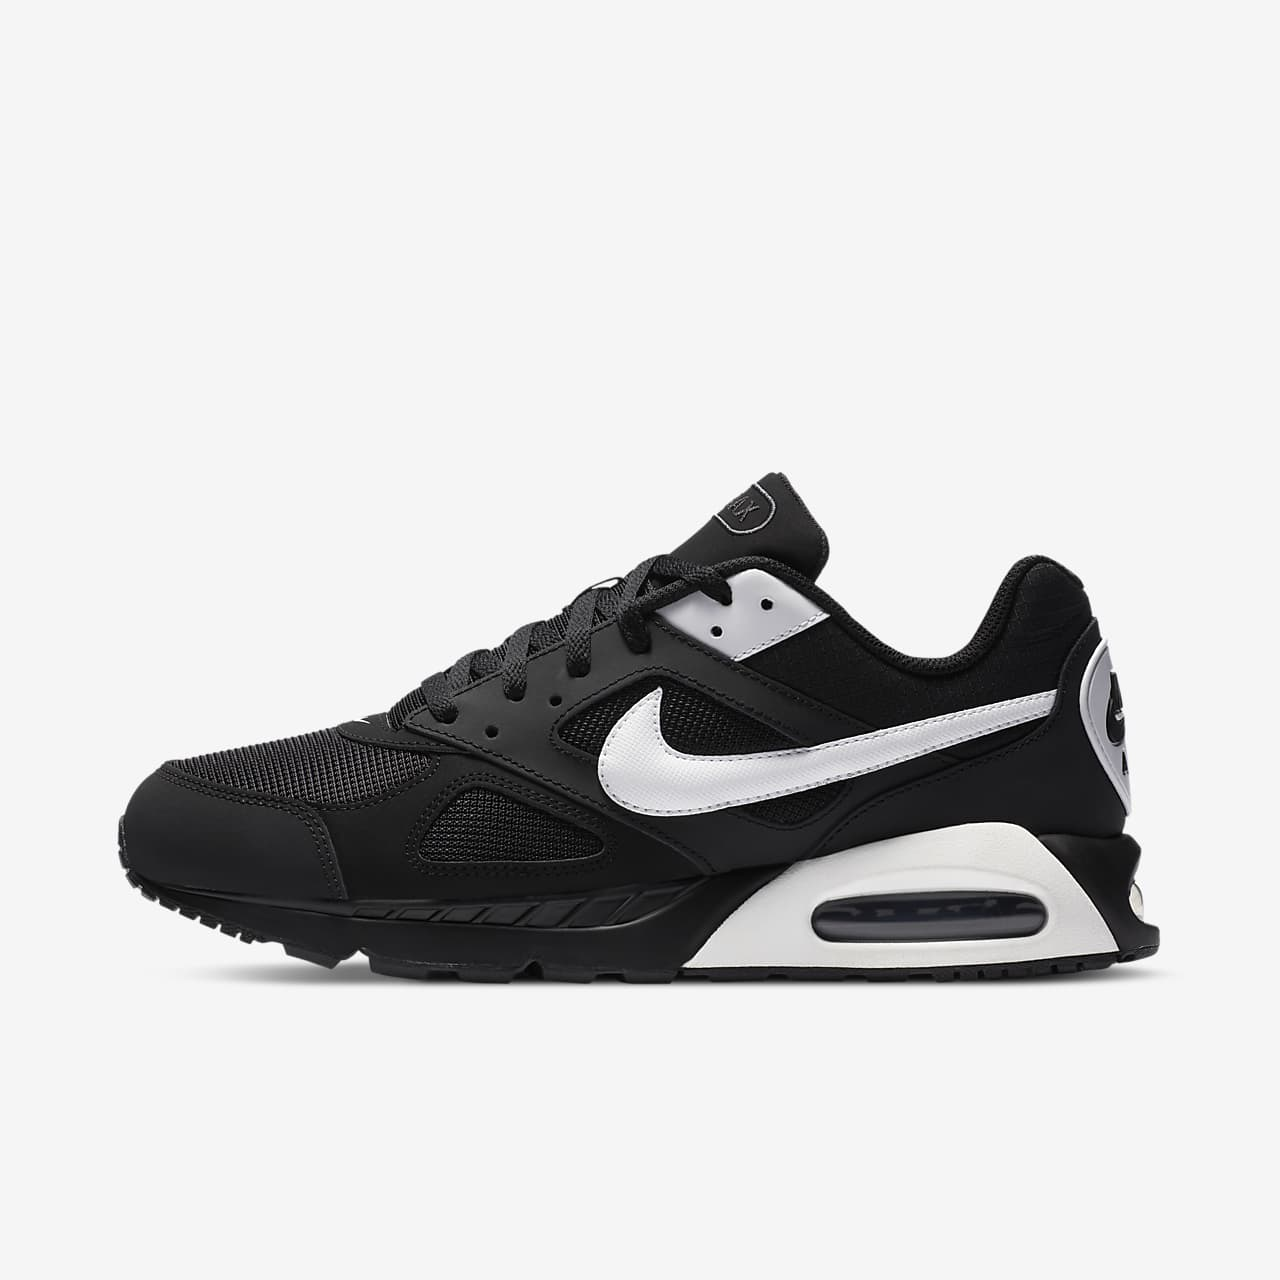 923655f61845 Nike Air Max IVO Men s Shoe. Nike.com CA